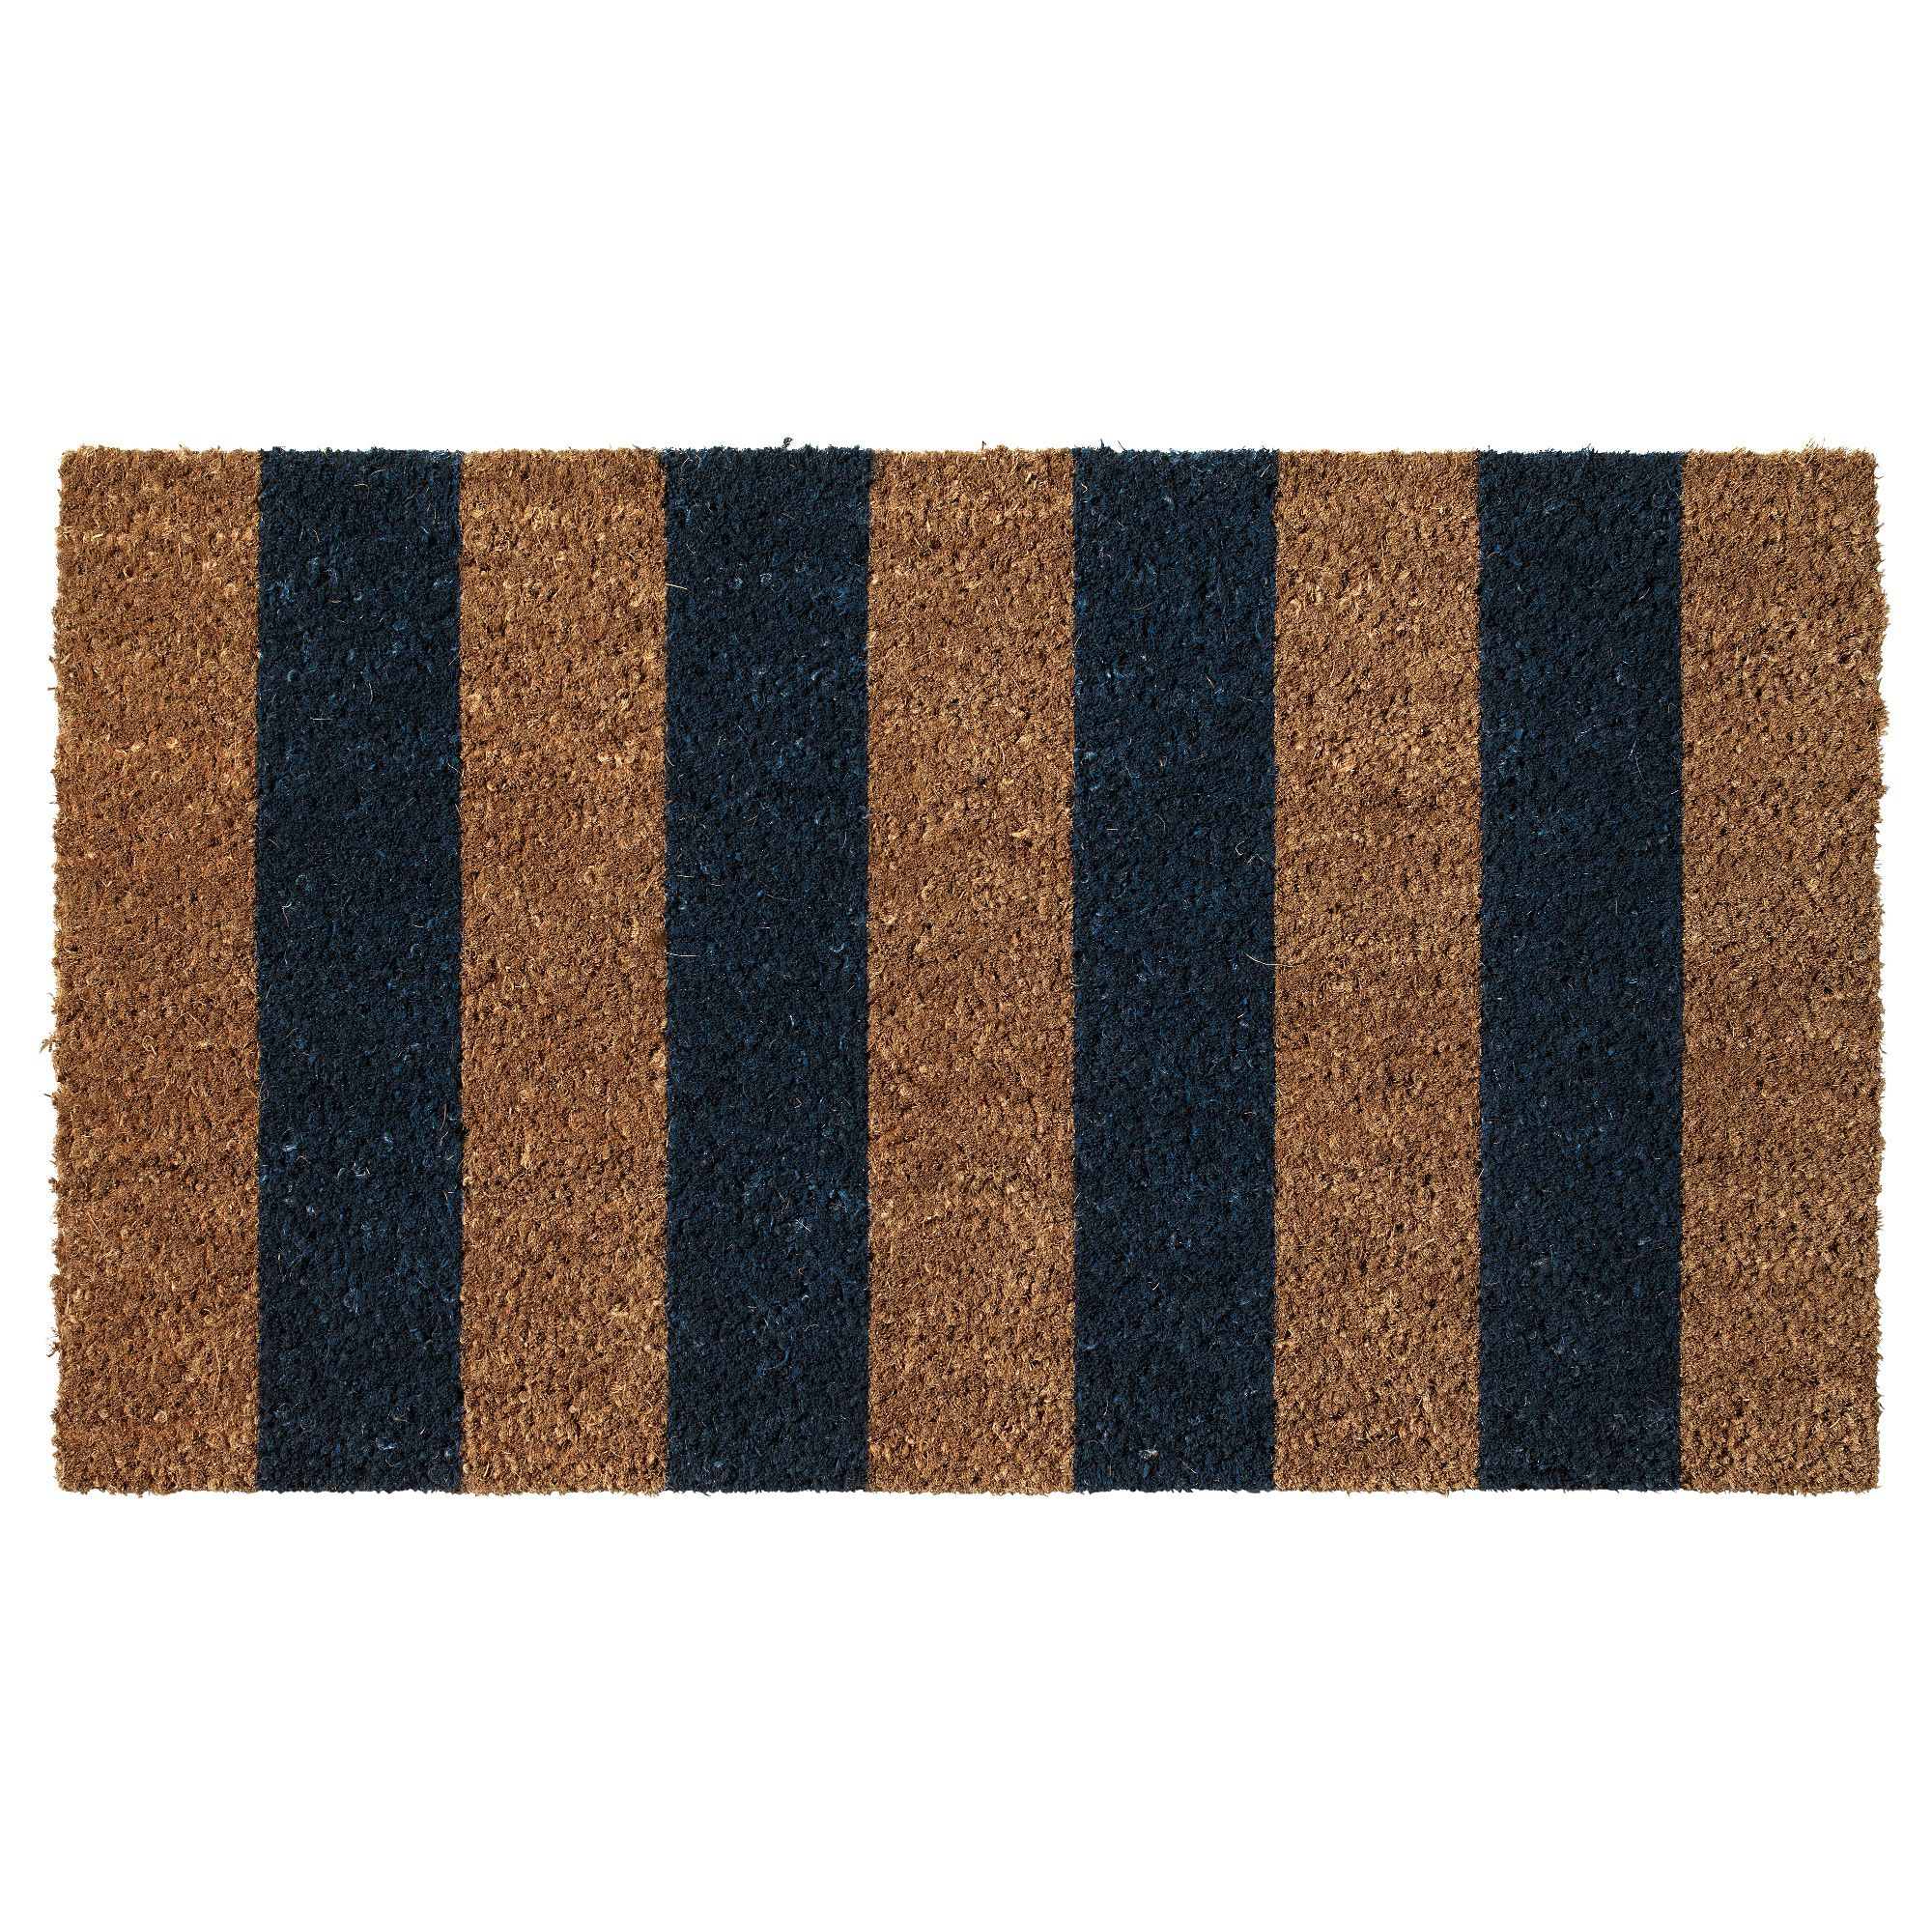 for ideas rug bench patio with mat also rugs crib floors storage floor ikea baby fascinating mats area in stripes shag and walls design outdoor